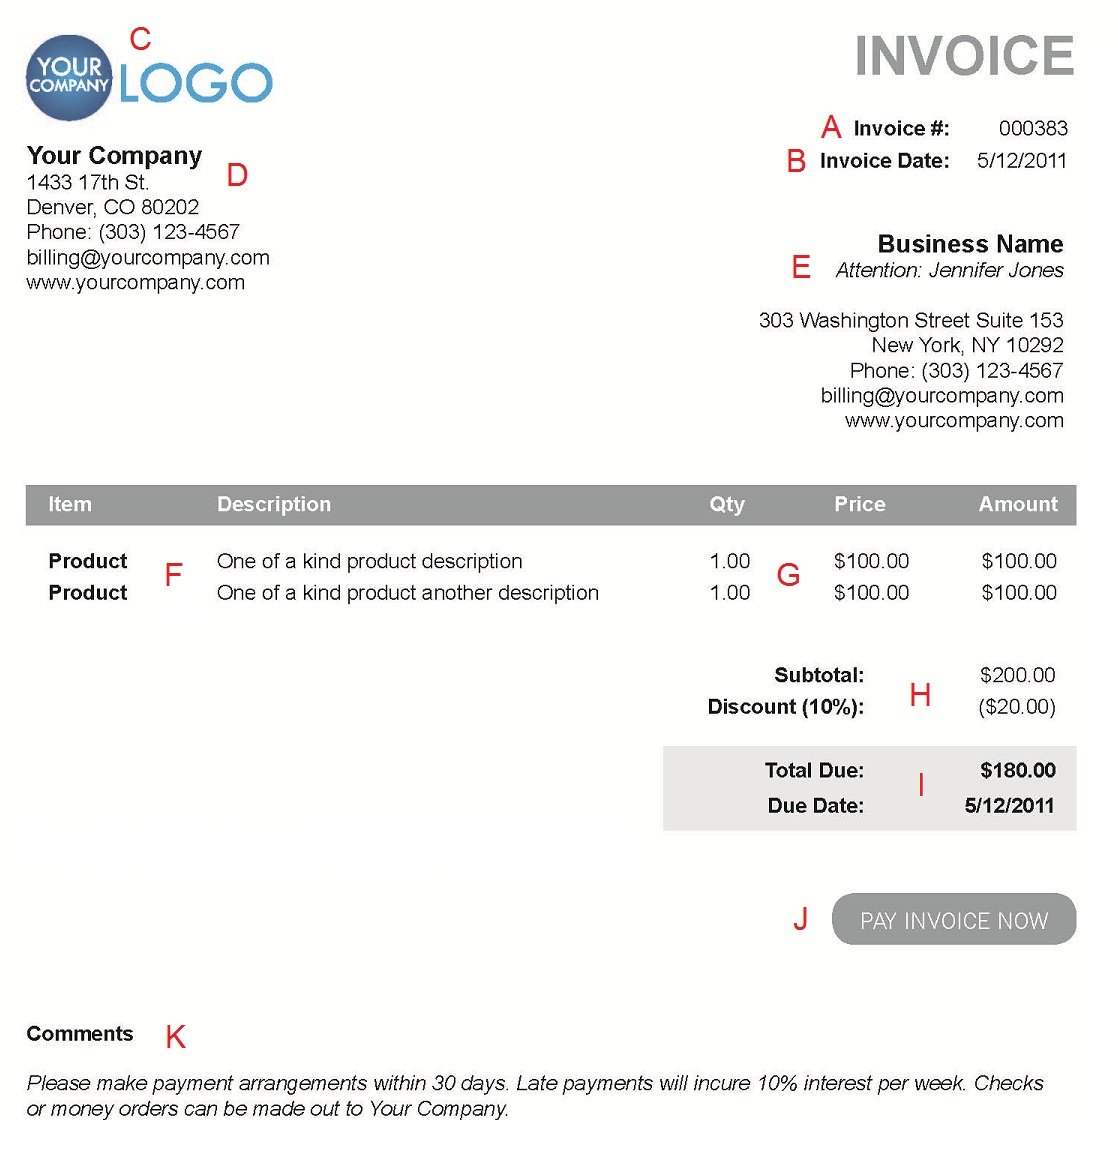 Picnictoimpeachus  Prepossessing The  Different Sections Of An Electronic Payment Invoice With Gorgeous A  With Beautiful Plumbers Invoice Template Also Printable Sales Invoice In Addition Time Tracking And Invoicing Software And Invoice Bill Template As Well As Invoice Receipt Book Additionally Late Invoice From Paysimplecom With Picnictoimpeachus  Gorgeous The  Different Sections Of An Electronic Payment Invoice With Beautiful A  And Prepossessing Plumbers Invoice Template Also Printable Sales Invoice In Addition Time Tracking And Invoicing Software From Paysimplecom